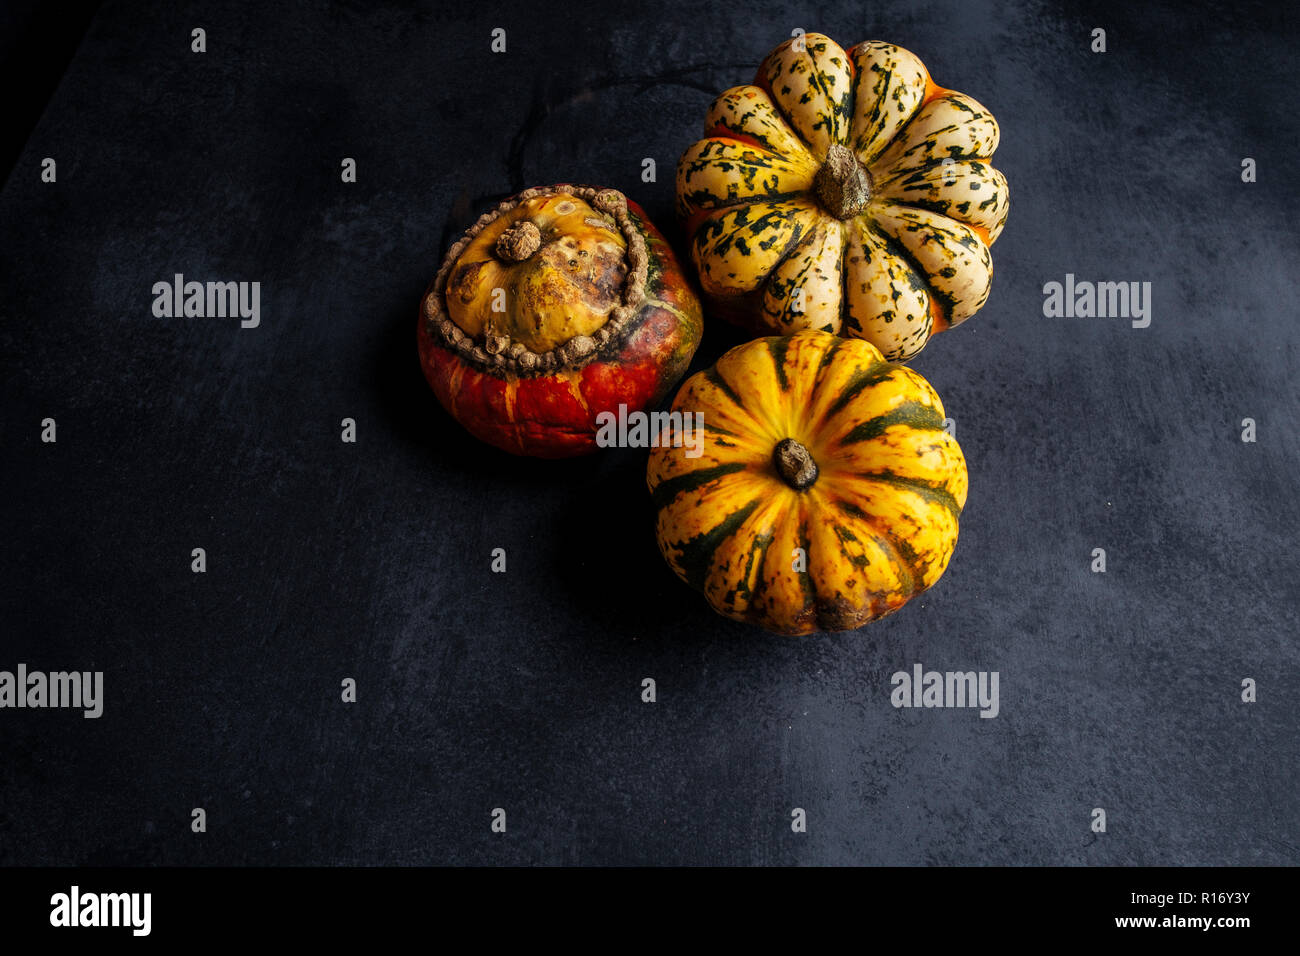 Squash or Pumpkins - Stock Image